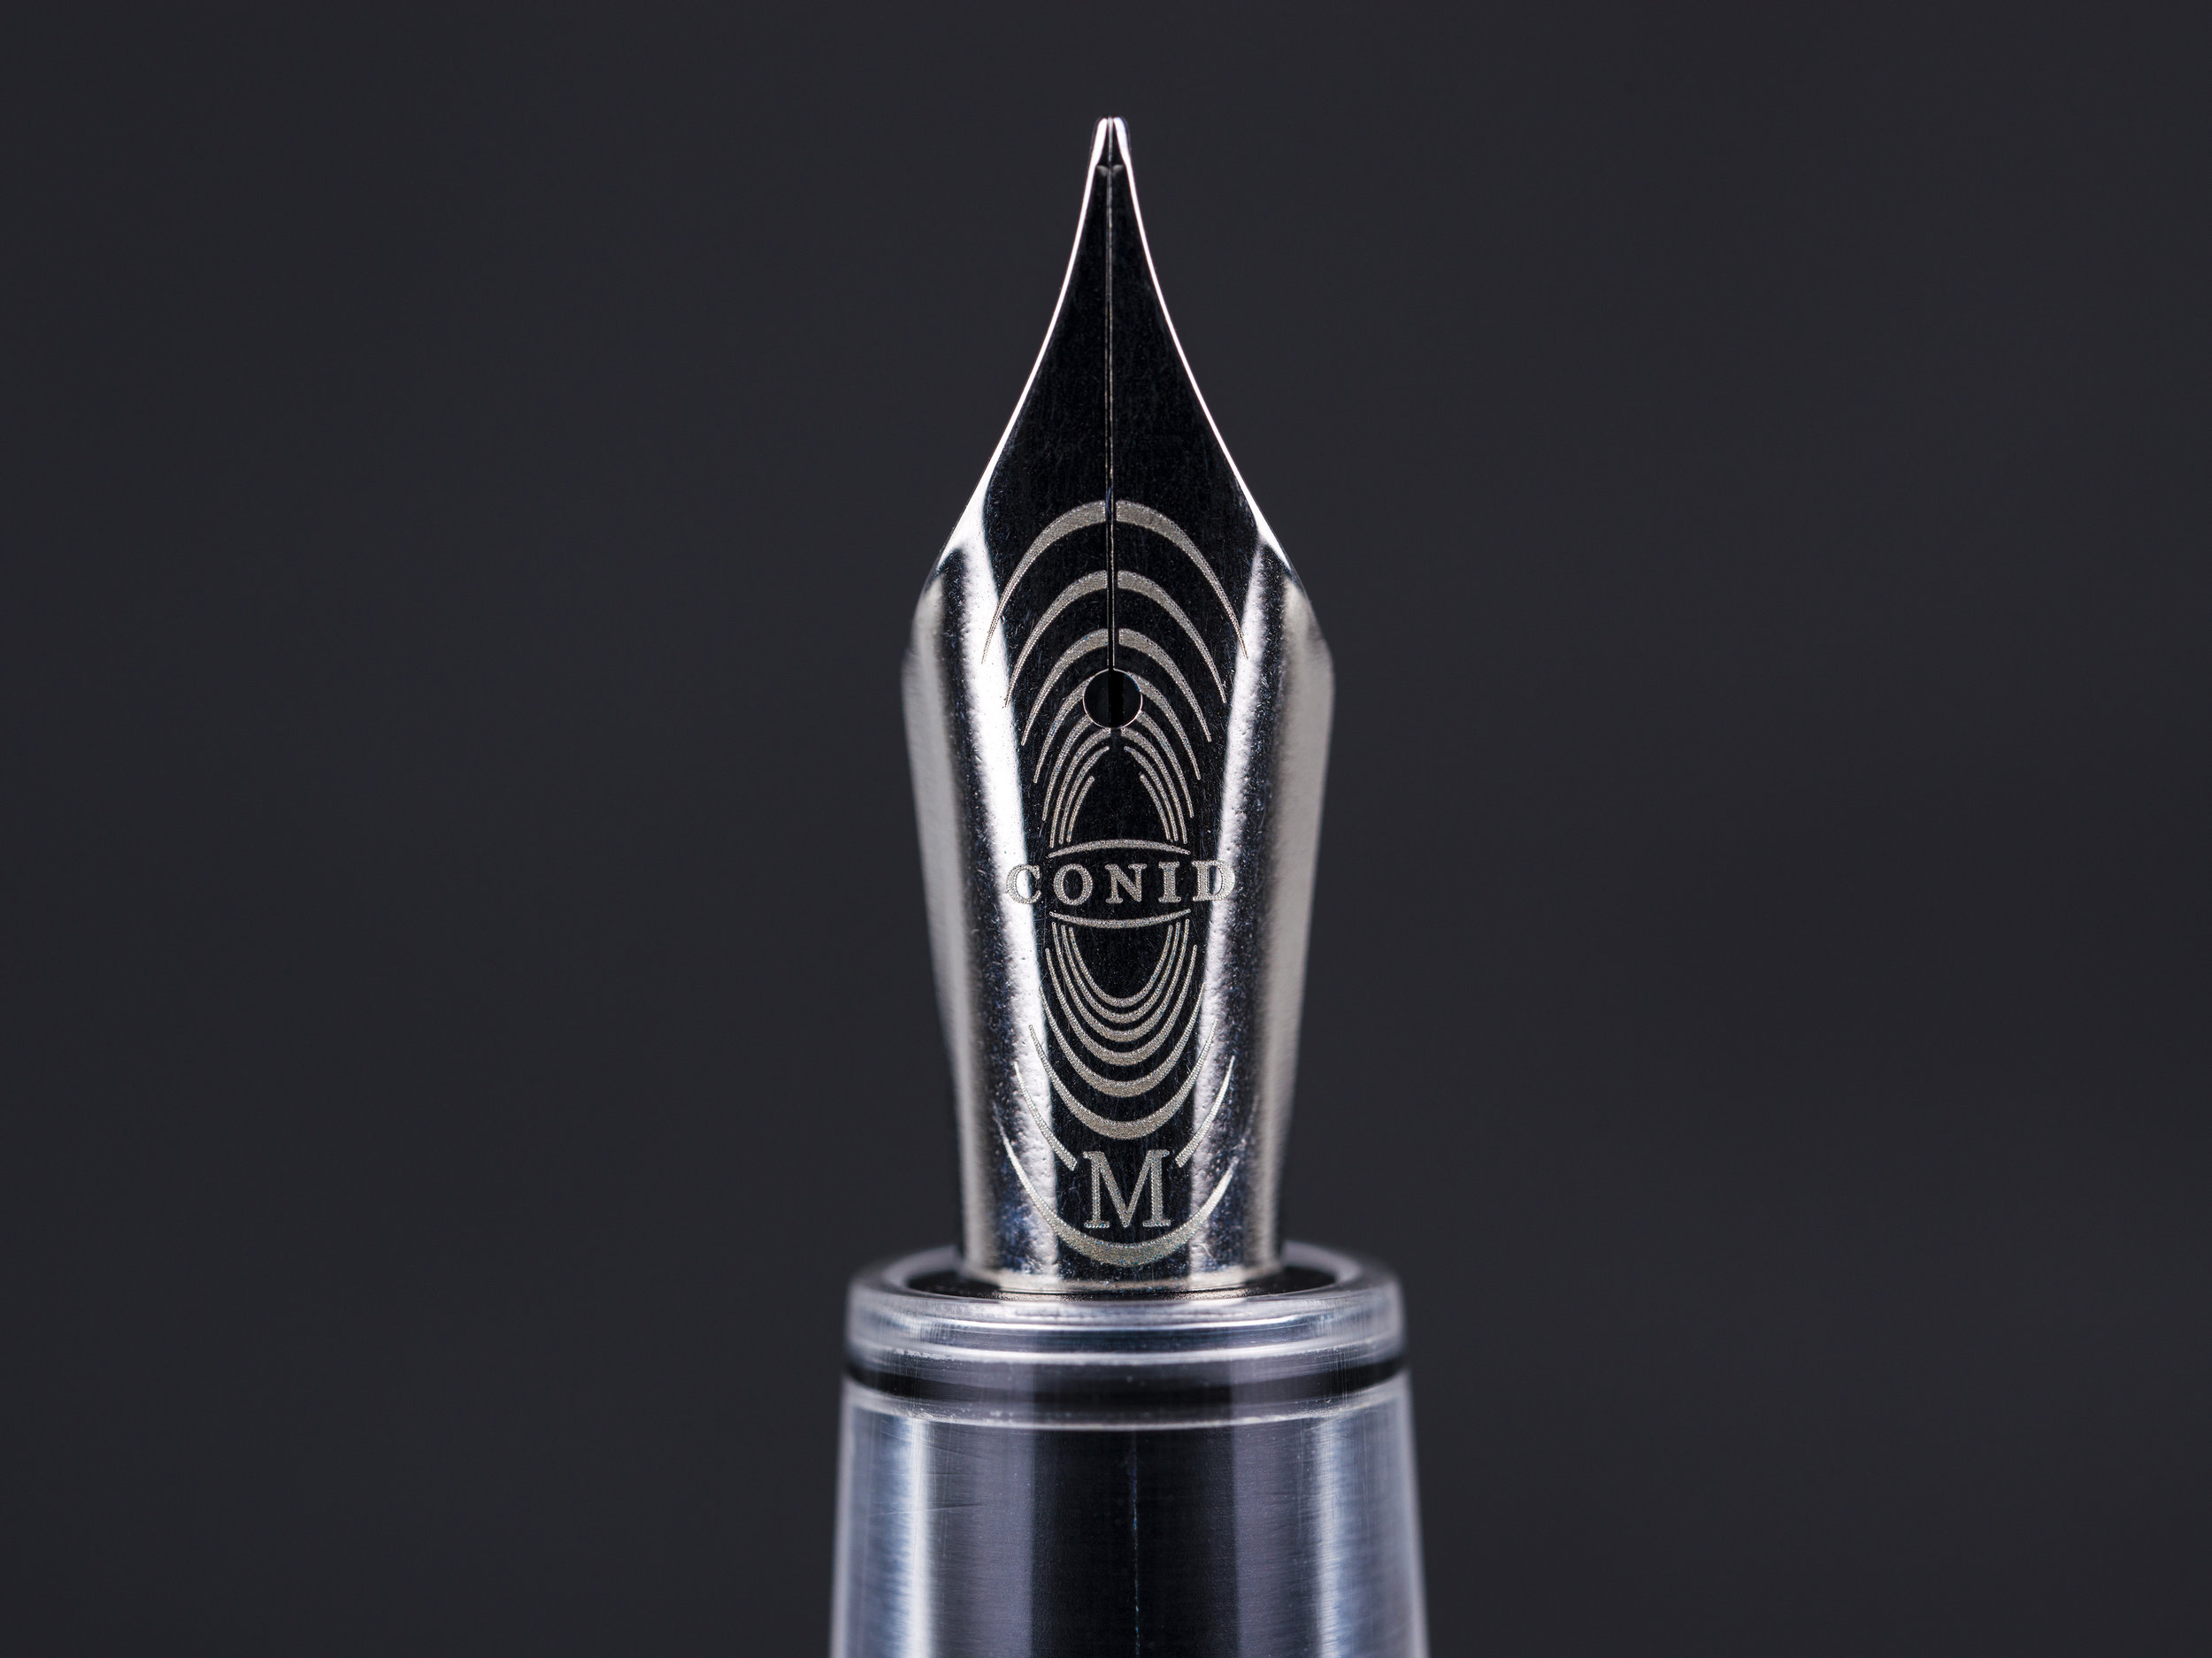 CONID Minimalistica Monarch Fontoplumo Exclusive